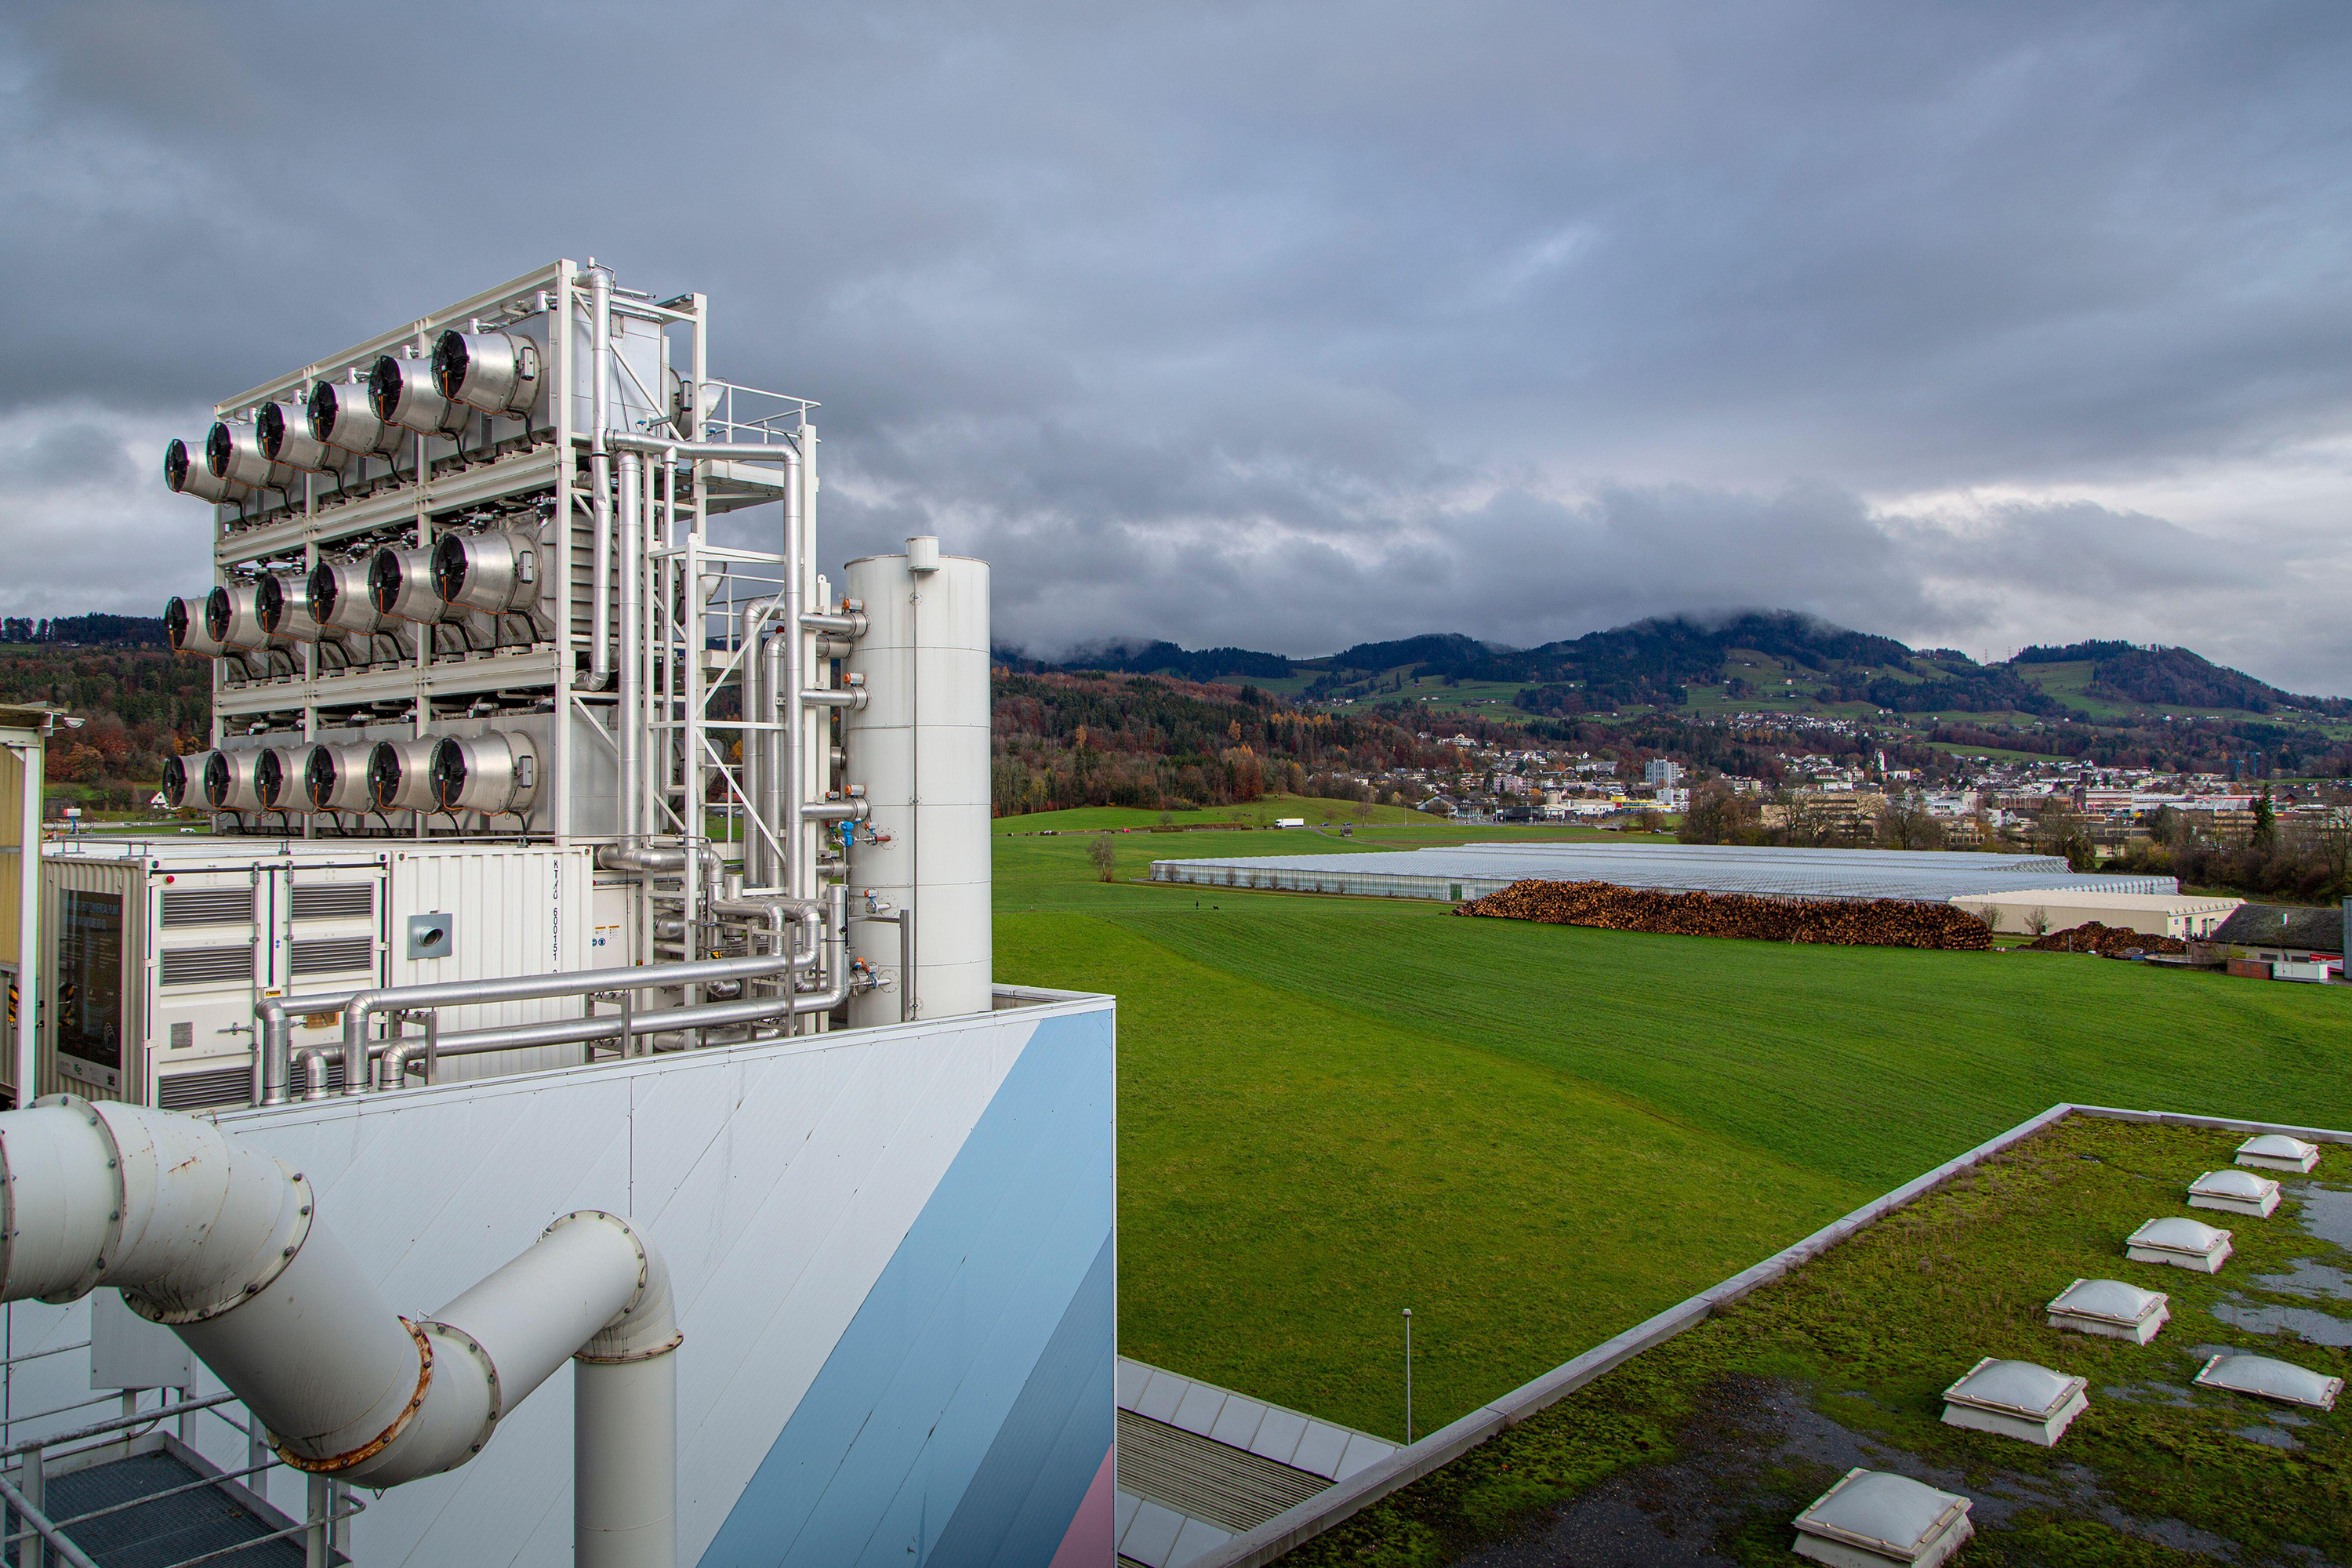 Climeworks are running 30 DAC - Direct Air Capture - fans on the roof of this garbage incinerator in Hinwil